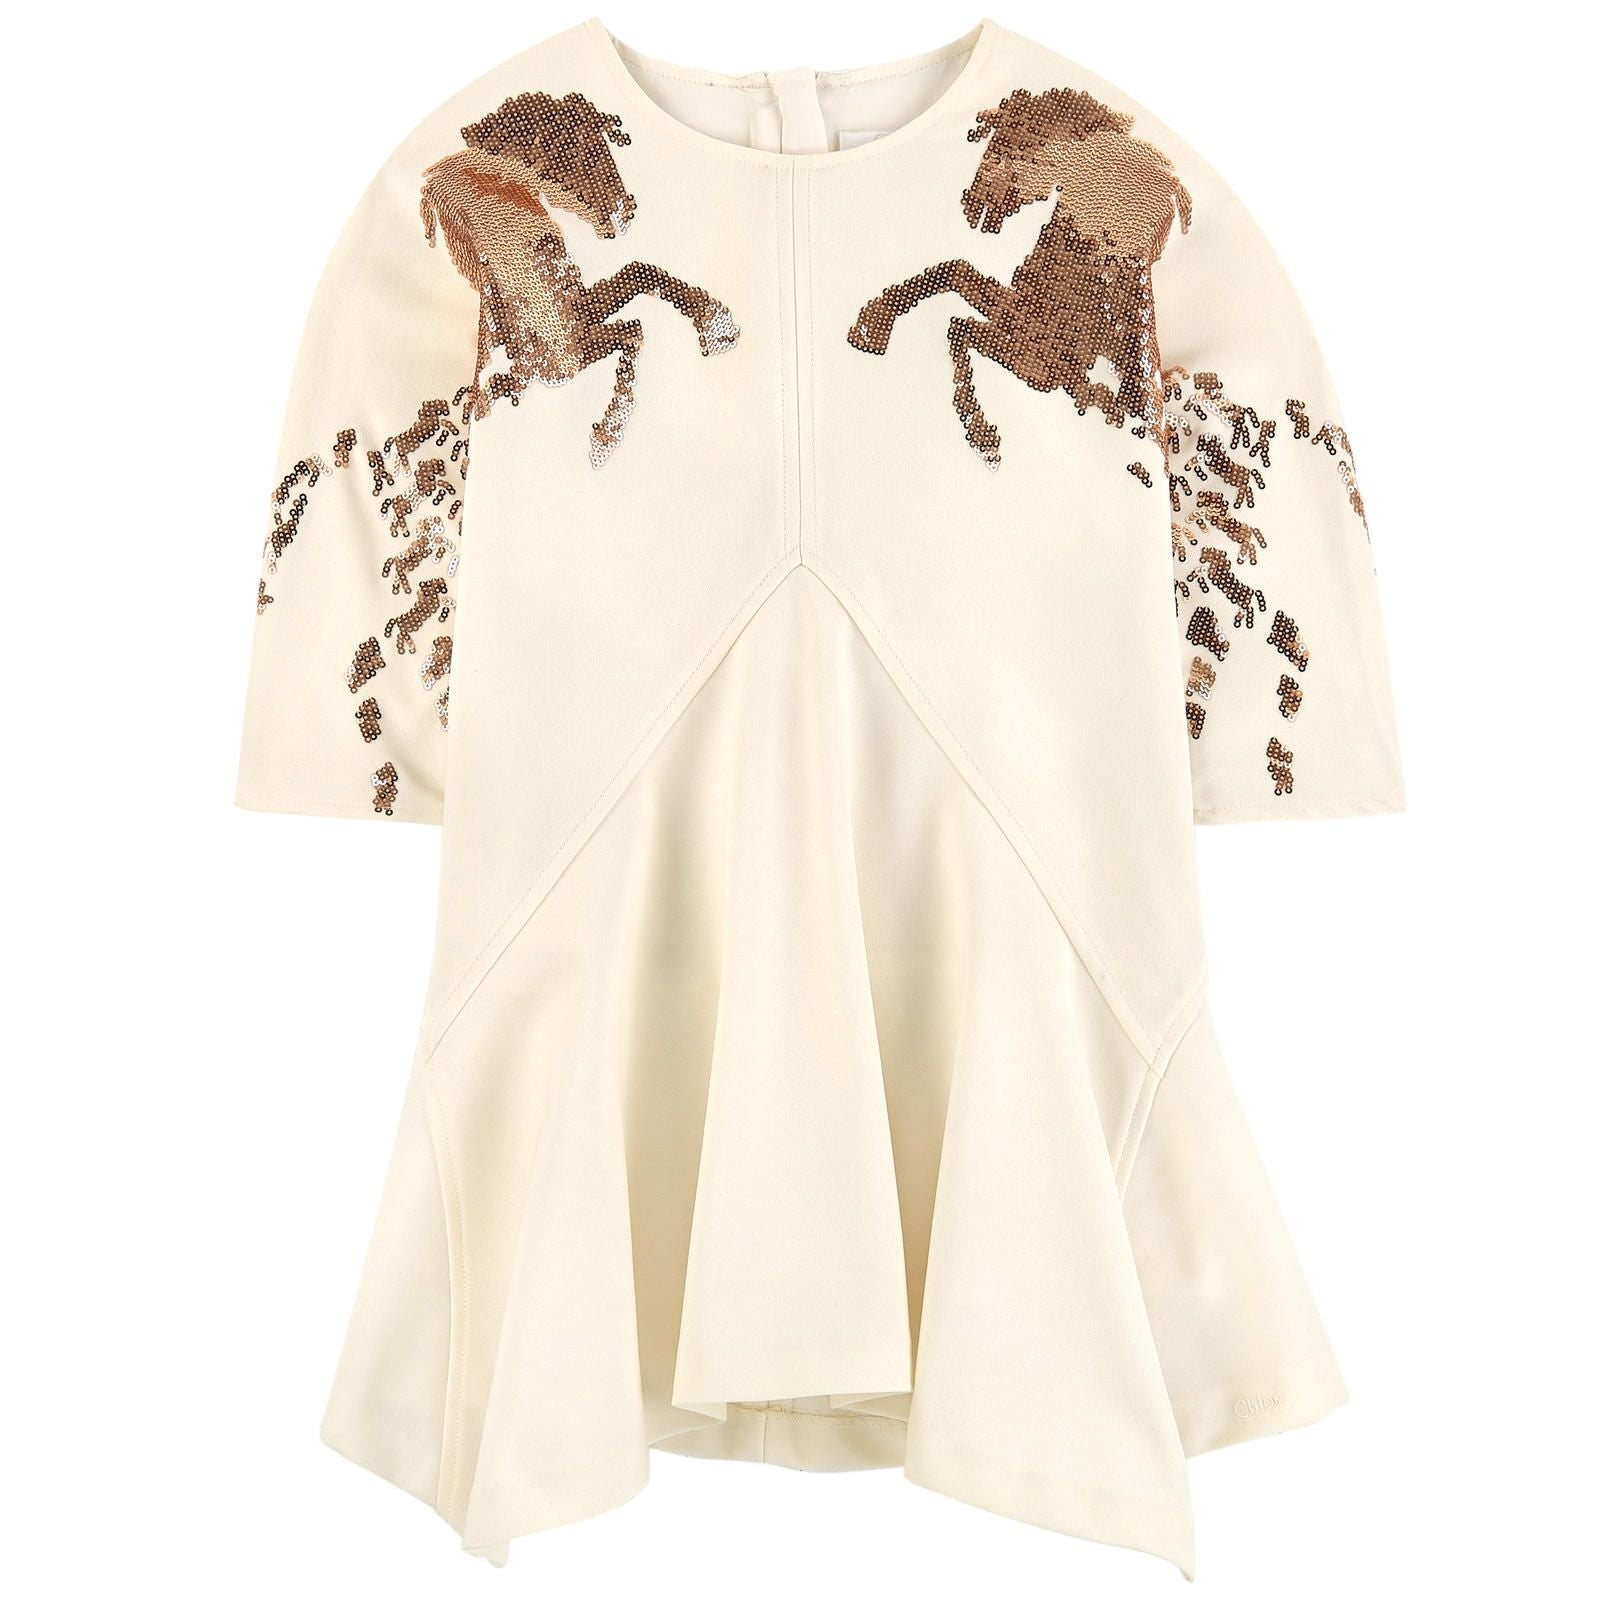 Chloe Mini Me Ivory Couture Crêpe Dress